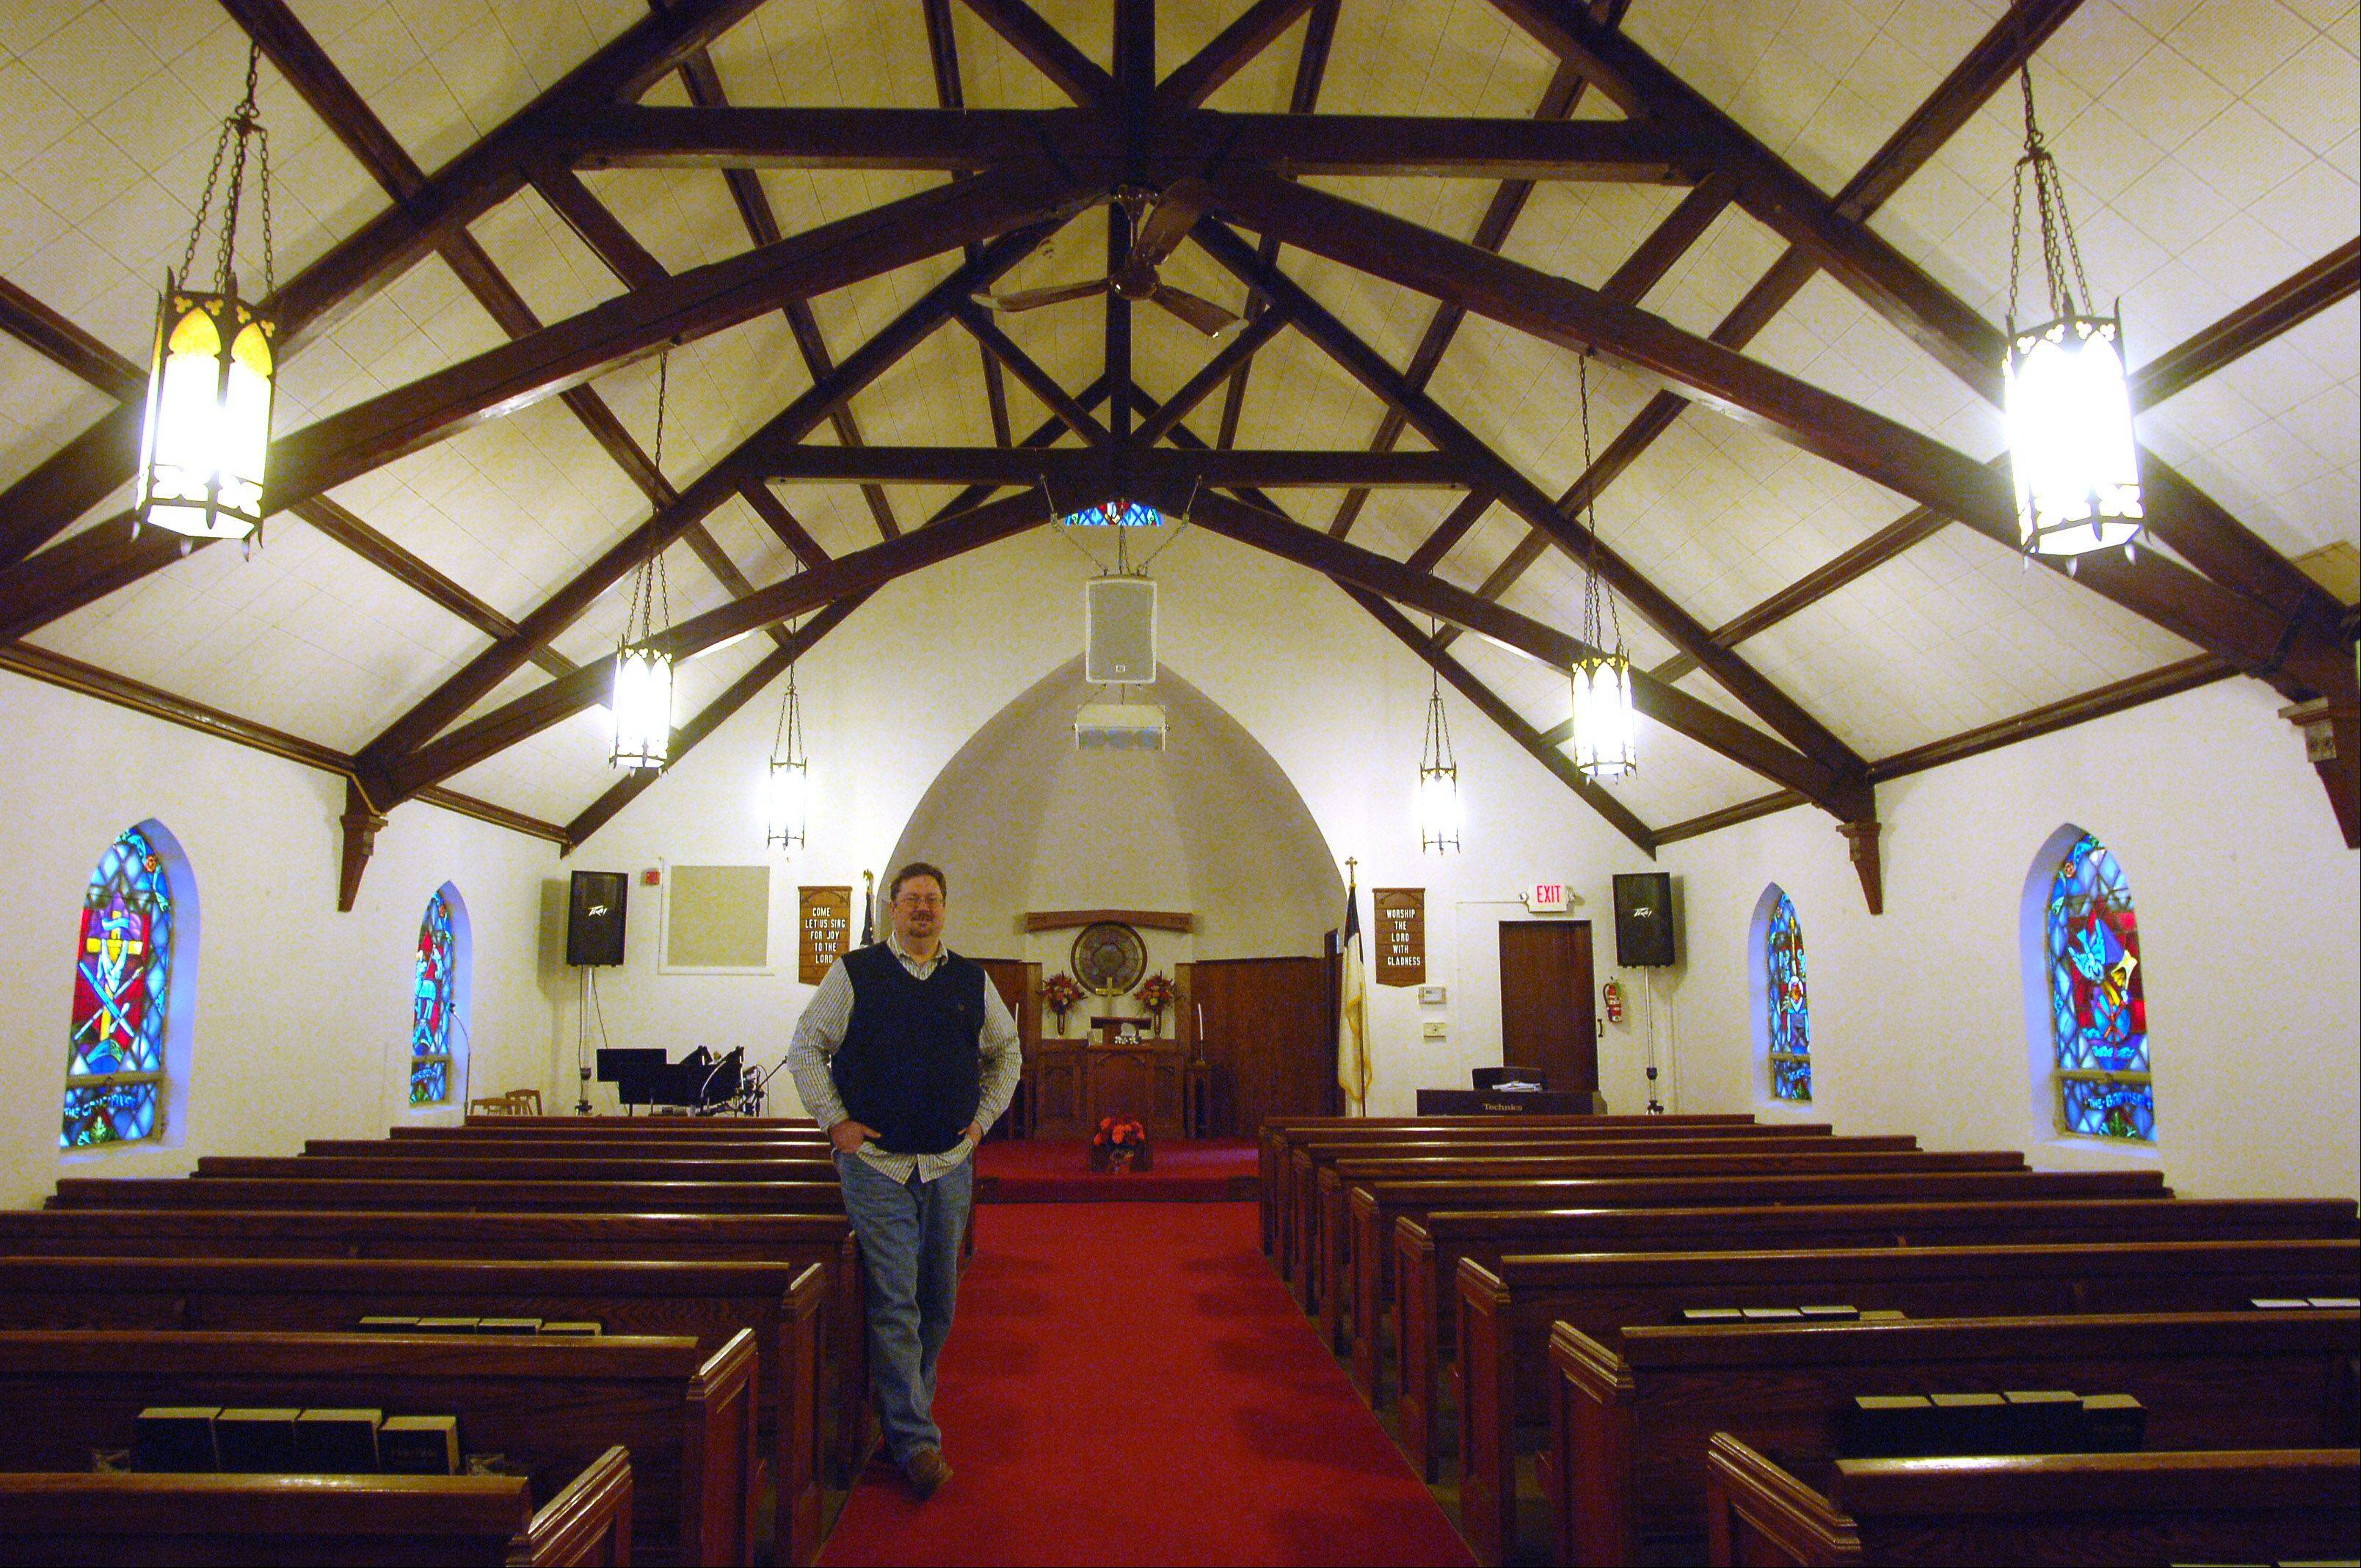 The Community Church of Round Lake will celebrate it's 80th anniversary on Sunday. Pastor Mark Drinnenberg is new to the church this year.